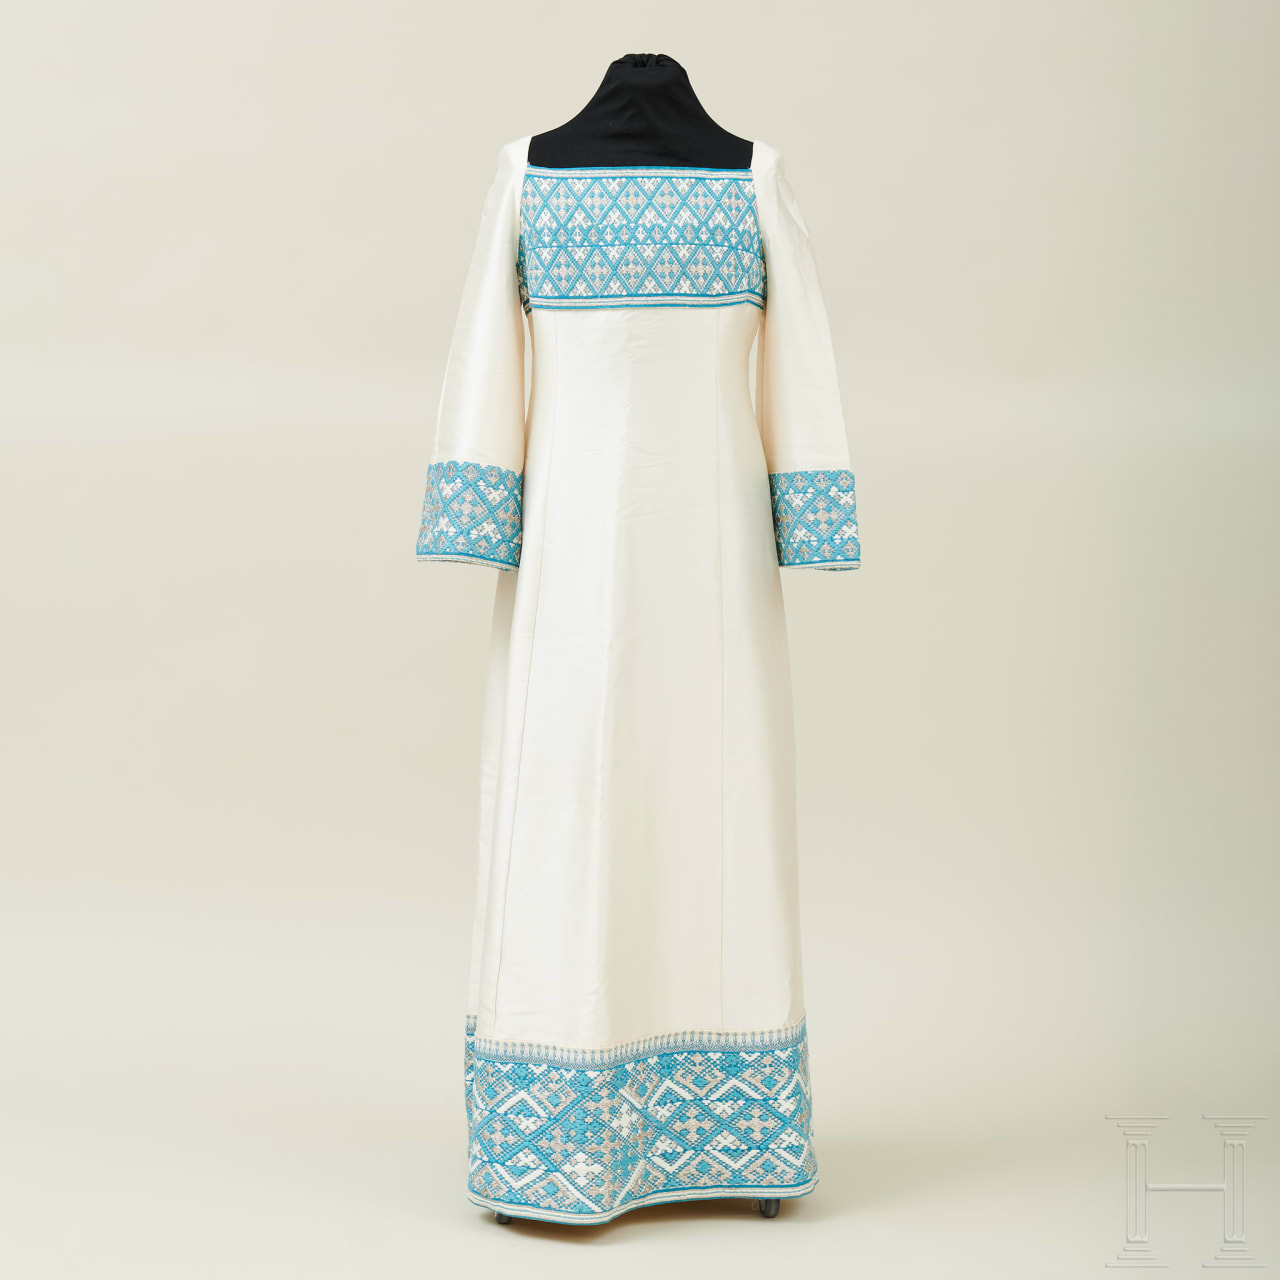 Farah Pahlavi (née Farah Diba), a gown worn by the Empress of Iran for state occasions, early 1970s